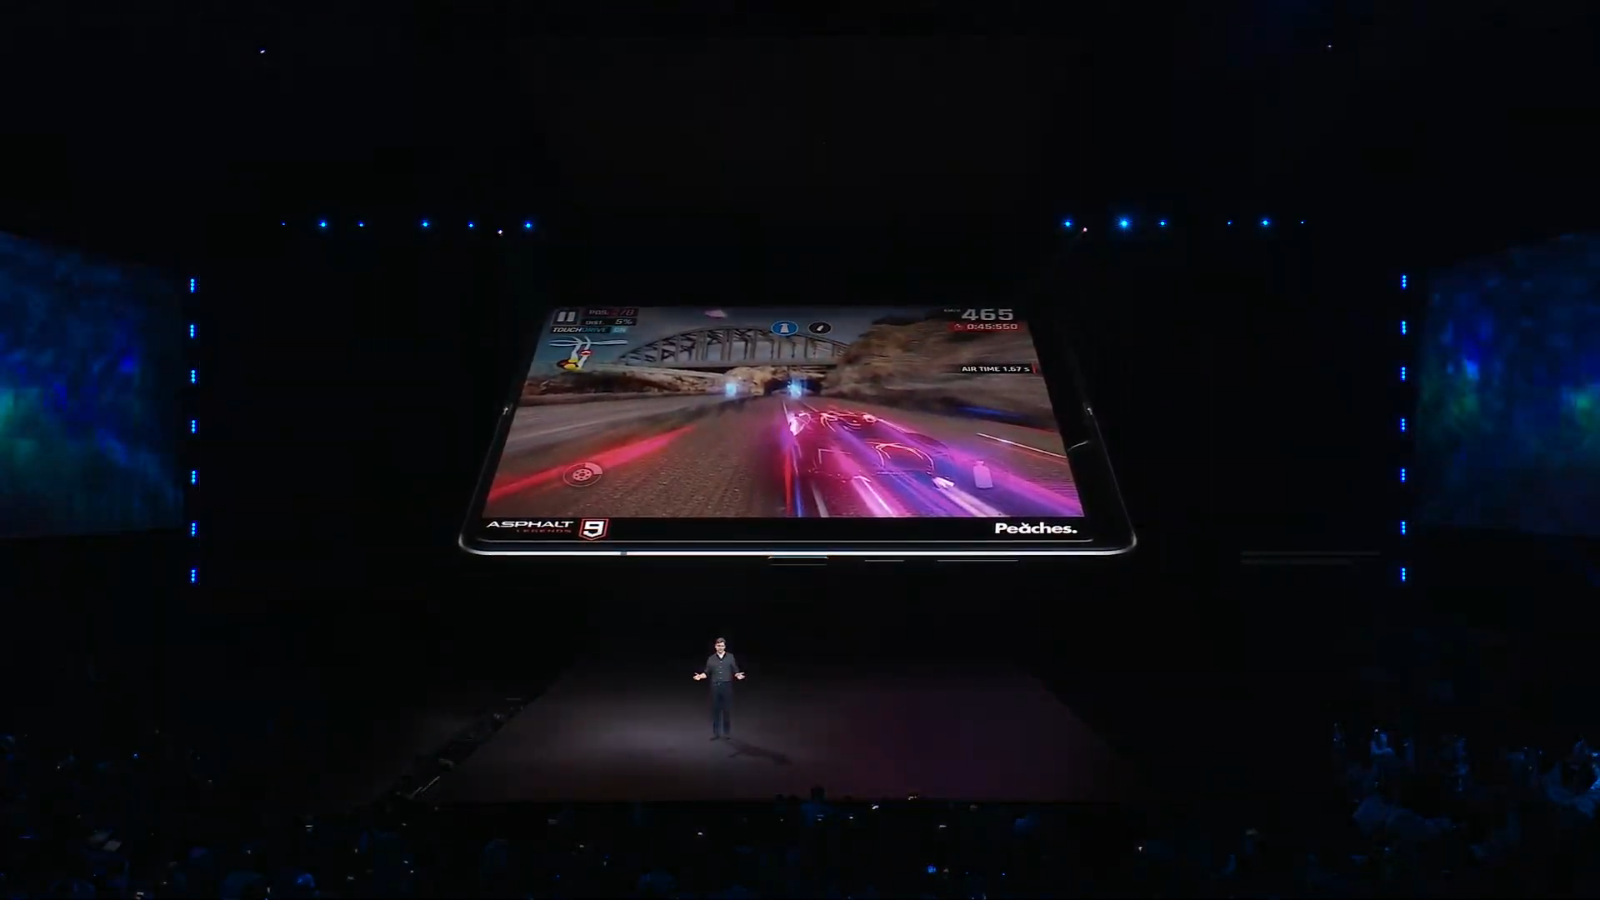 The Galaxy Fold features a 7nm processor.